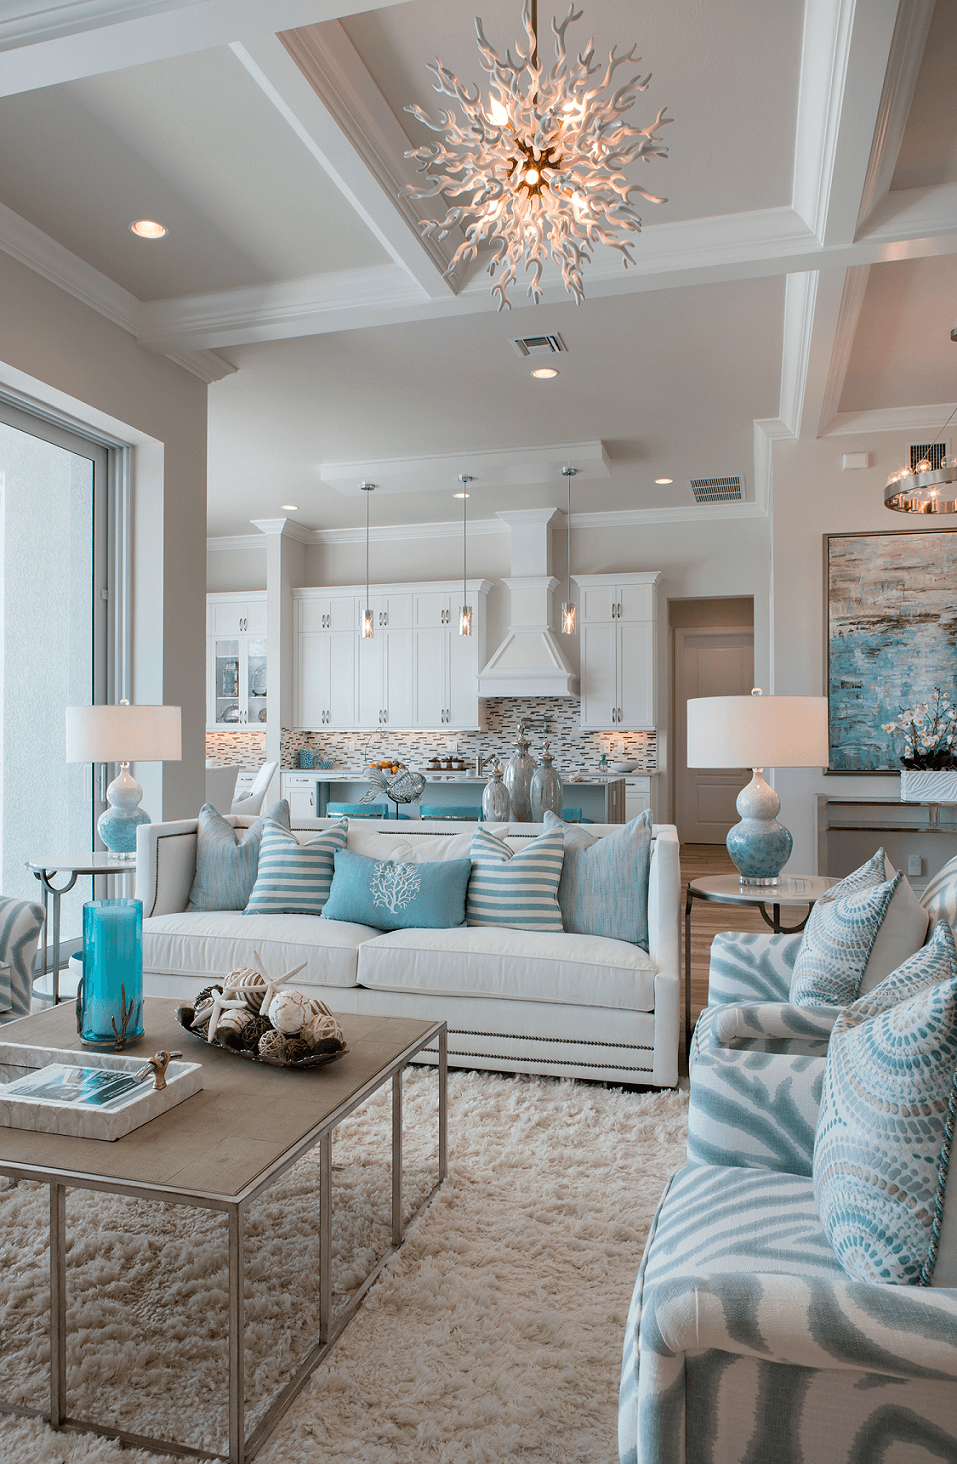 Home Design Ideas For 2019: 34 Best Beach And Coastal Decorating Ideas And Designs For